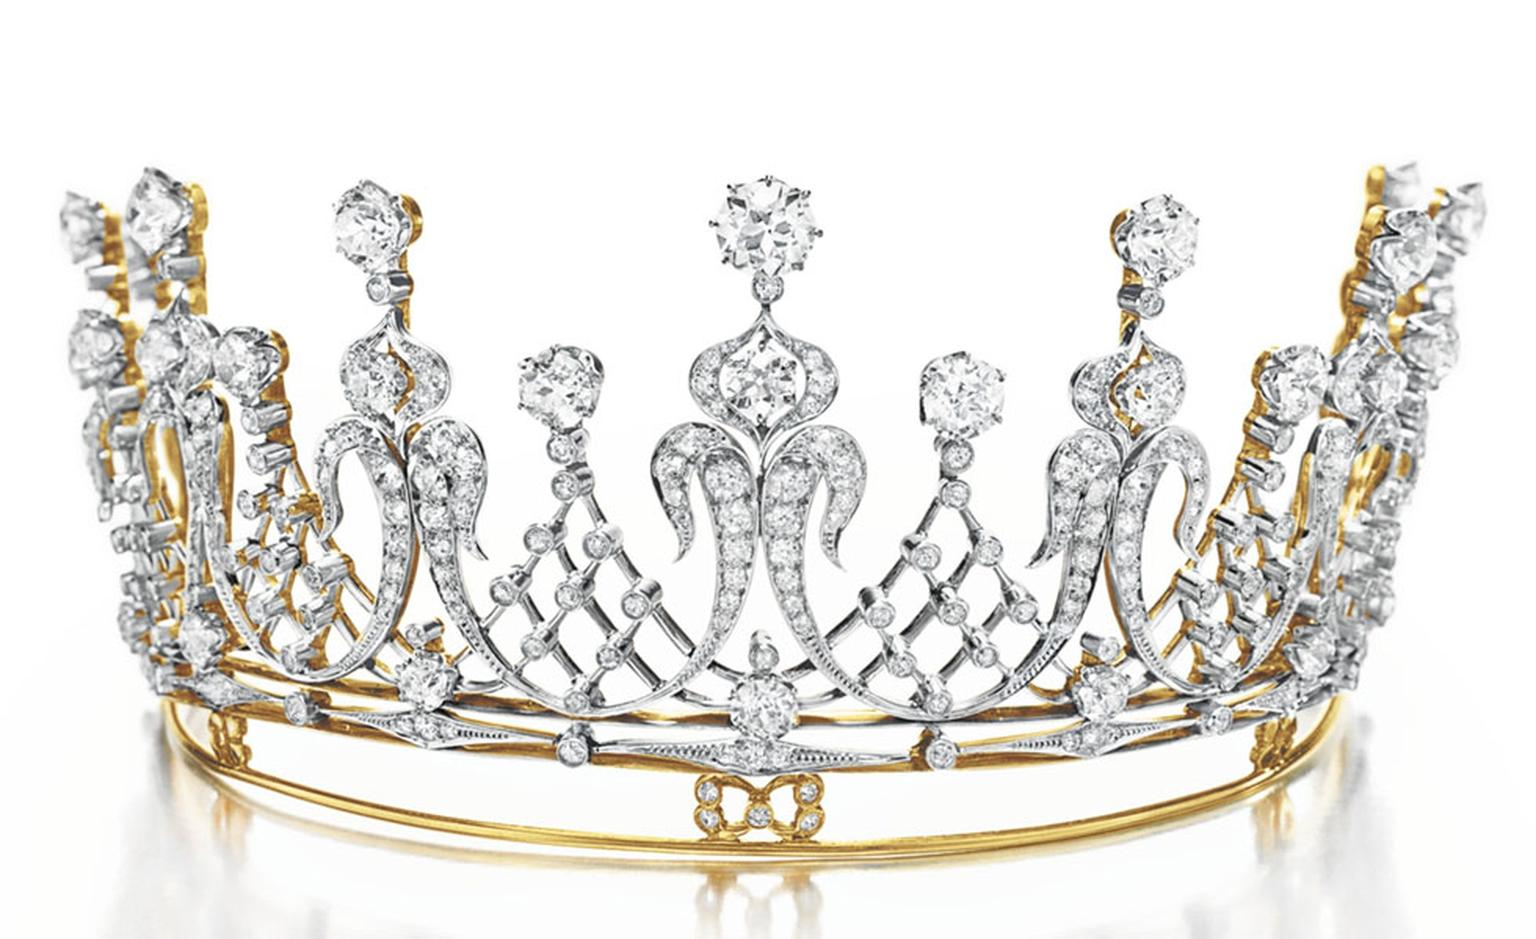 "The Mike Todd Diamond Tiara. An Antique Diamond Tiara, circa 1880 Gift from Mike Todd, 1957. He presented her with this antique diamond tiara, saying, ""You are my queen."" She wore it to the Academy Awards in Los Angeles in 1957, where Todd's fil..."